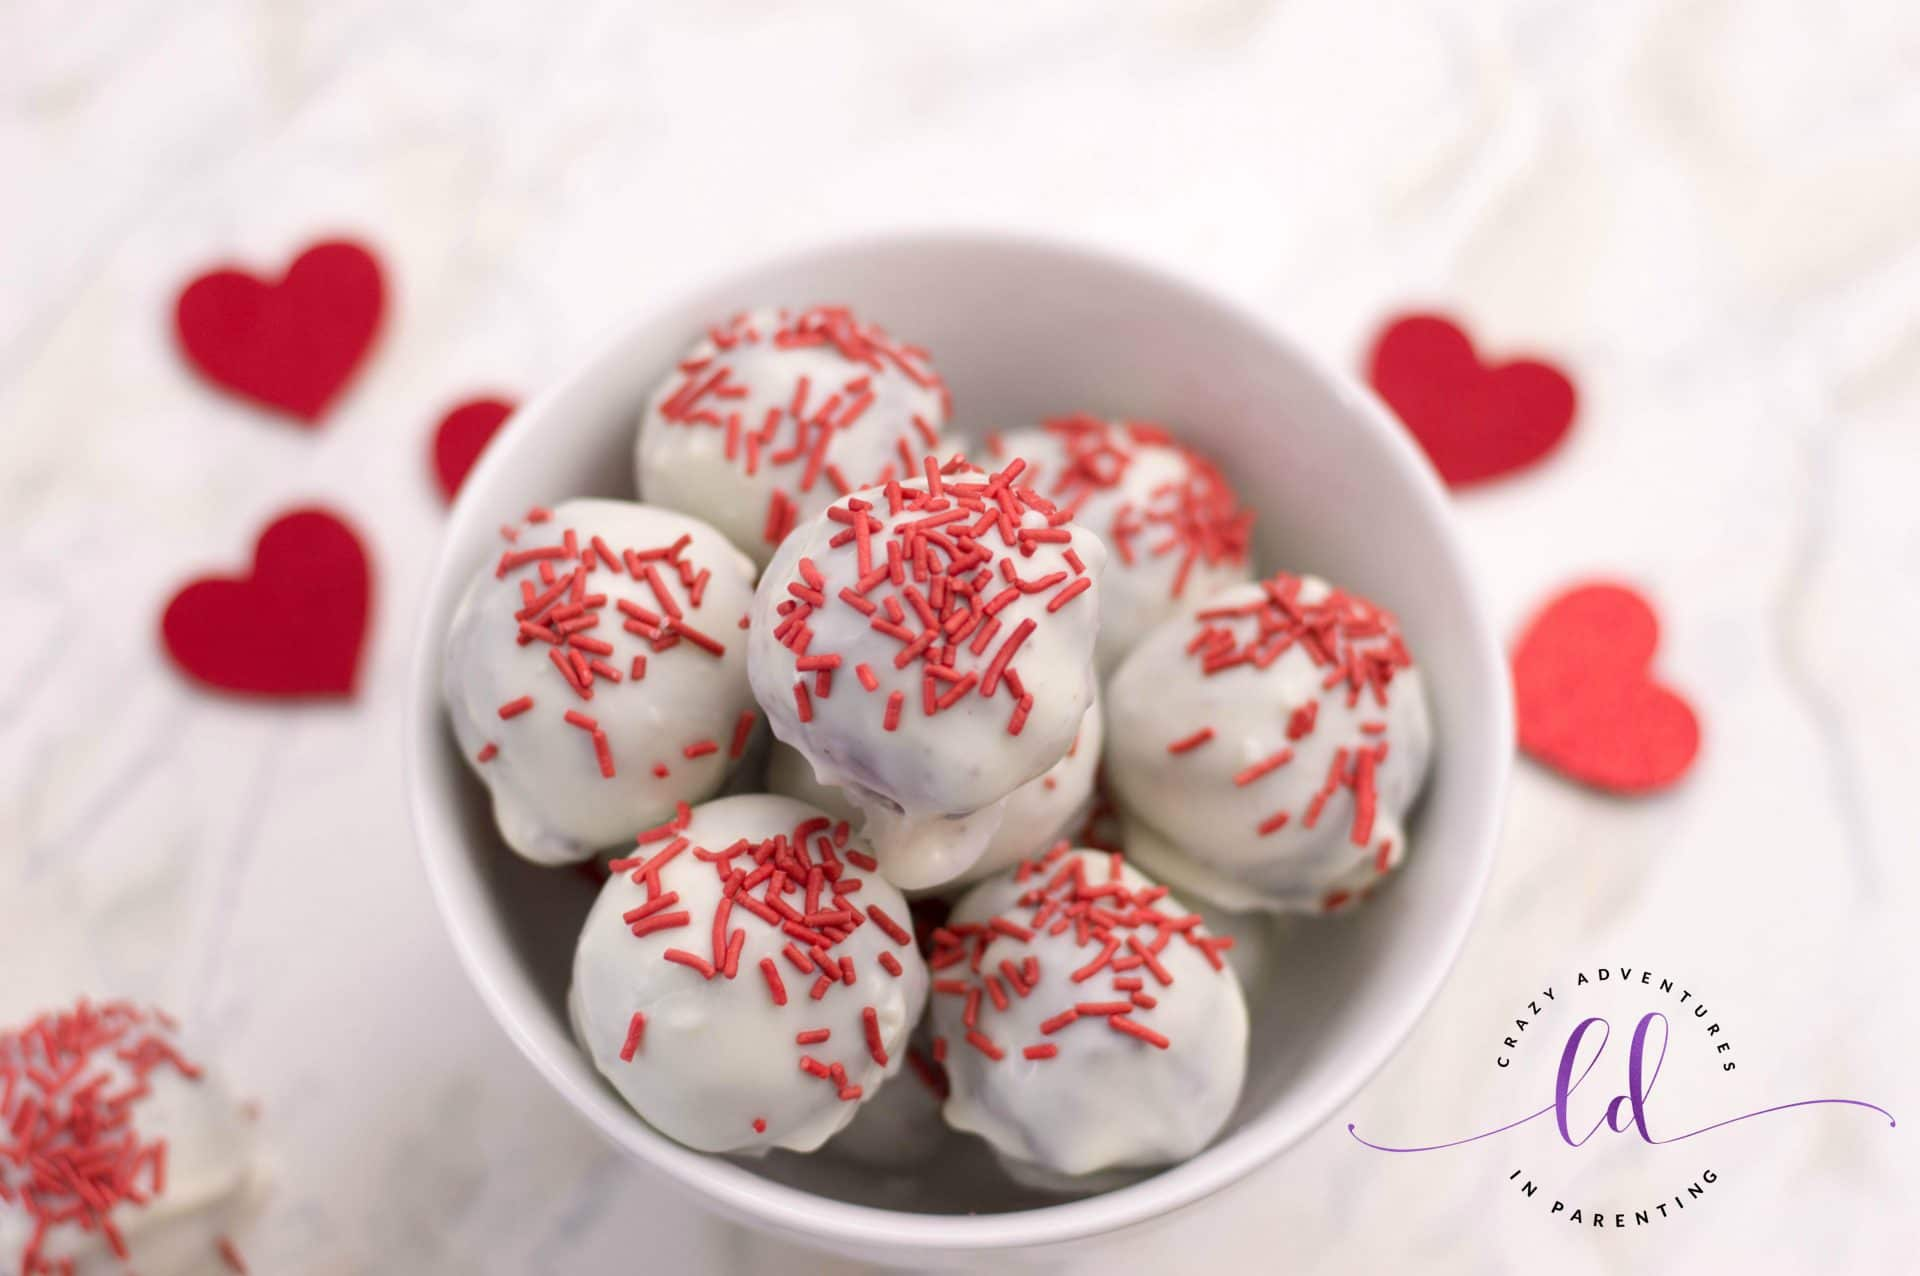 Red Velvet Truffles for Valentine's